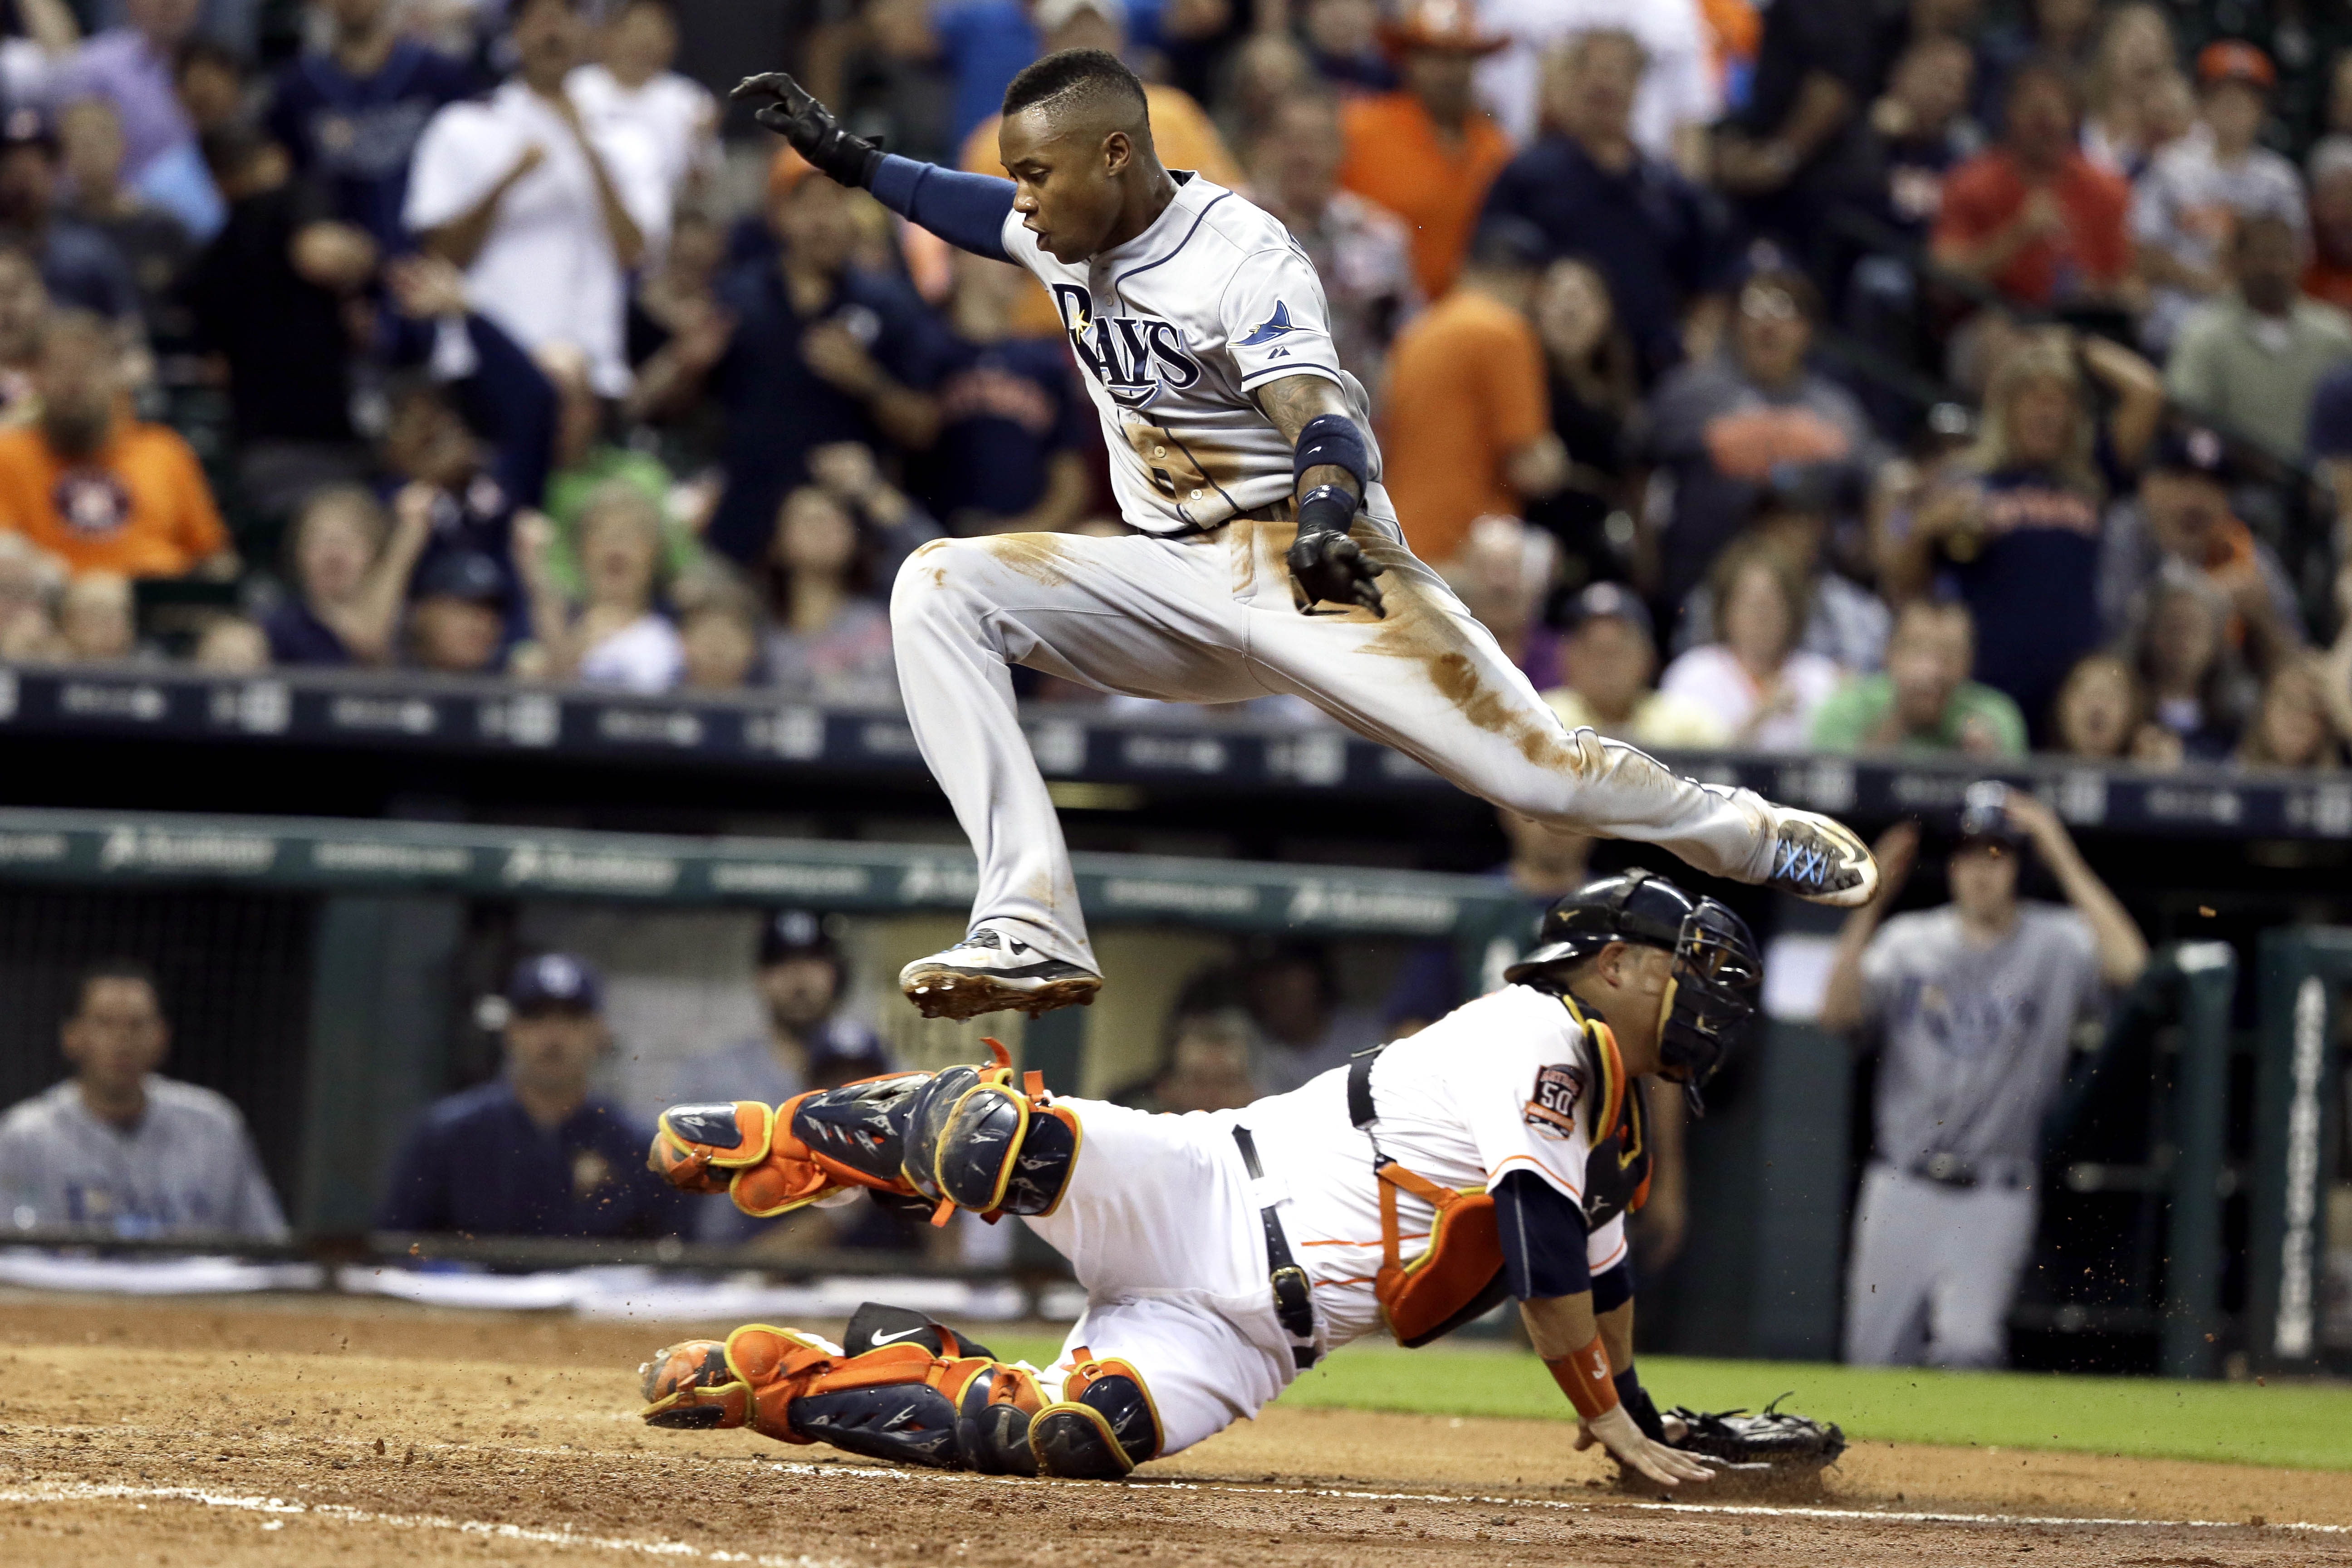 Tampa Bay Rays' Tim Beckham leaps over Houston Astros catcher Hank Conger to score on a James Loney sacrifice fly during the seventh inning of a baseball game Wednesday, Aug. 19, 2015, in Houston. (AP Photo/Pat Sullivan)